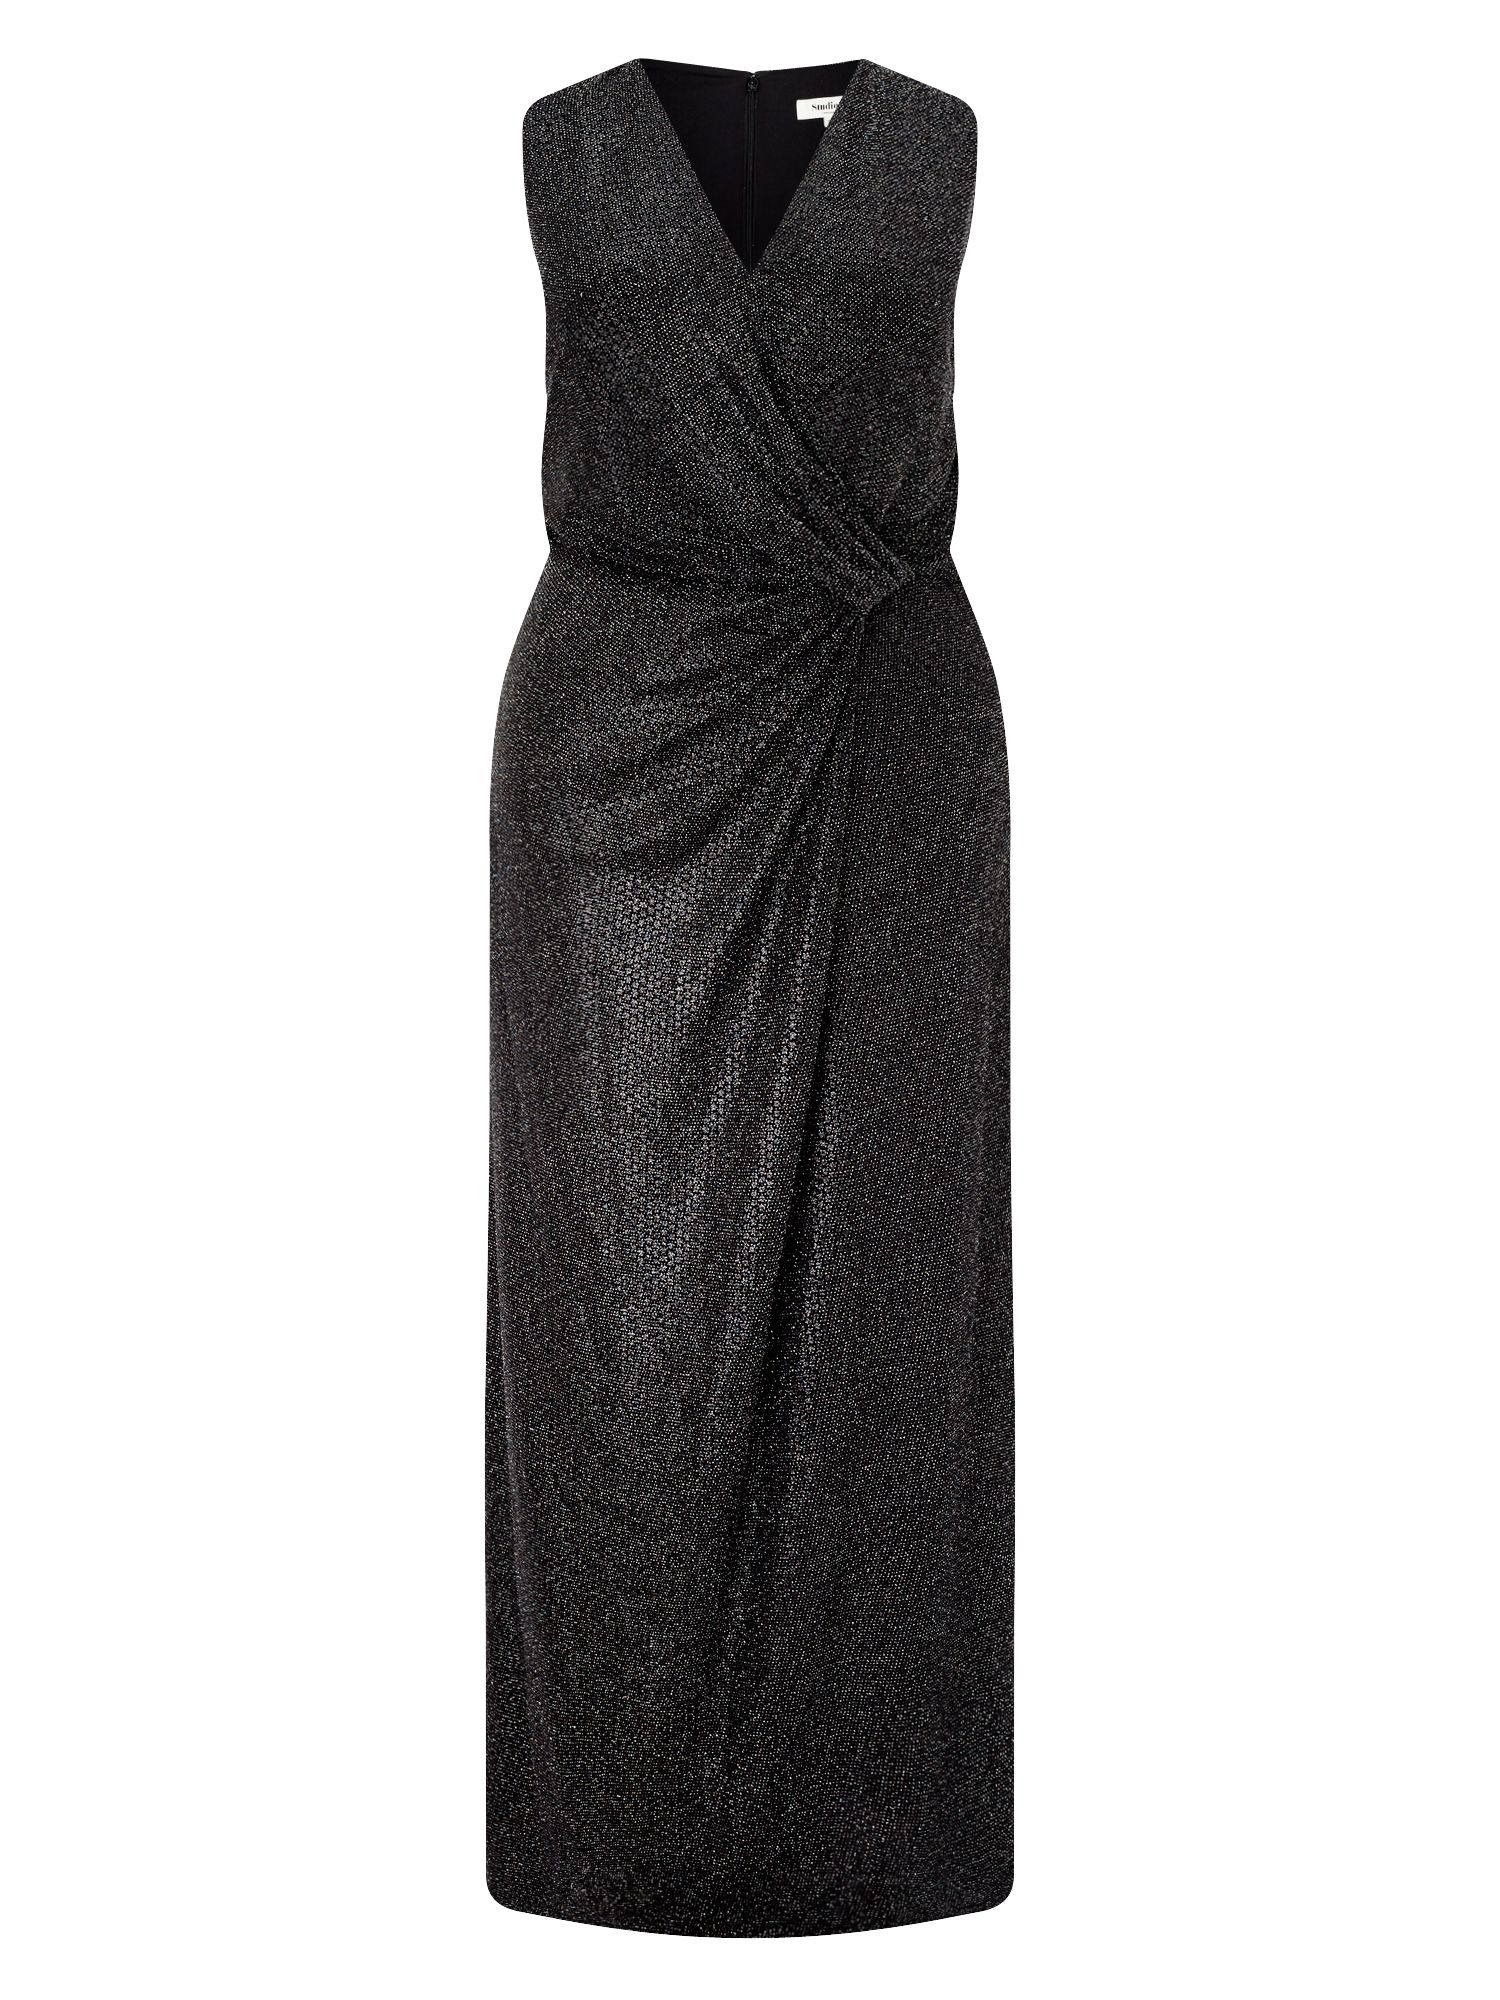 Studio 8 Tilly Maxi Dress, Silver Silverlic